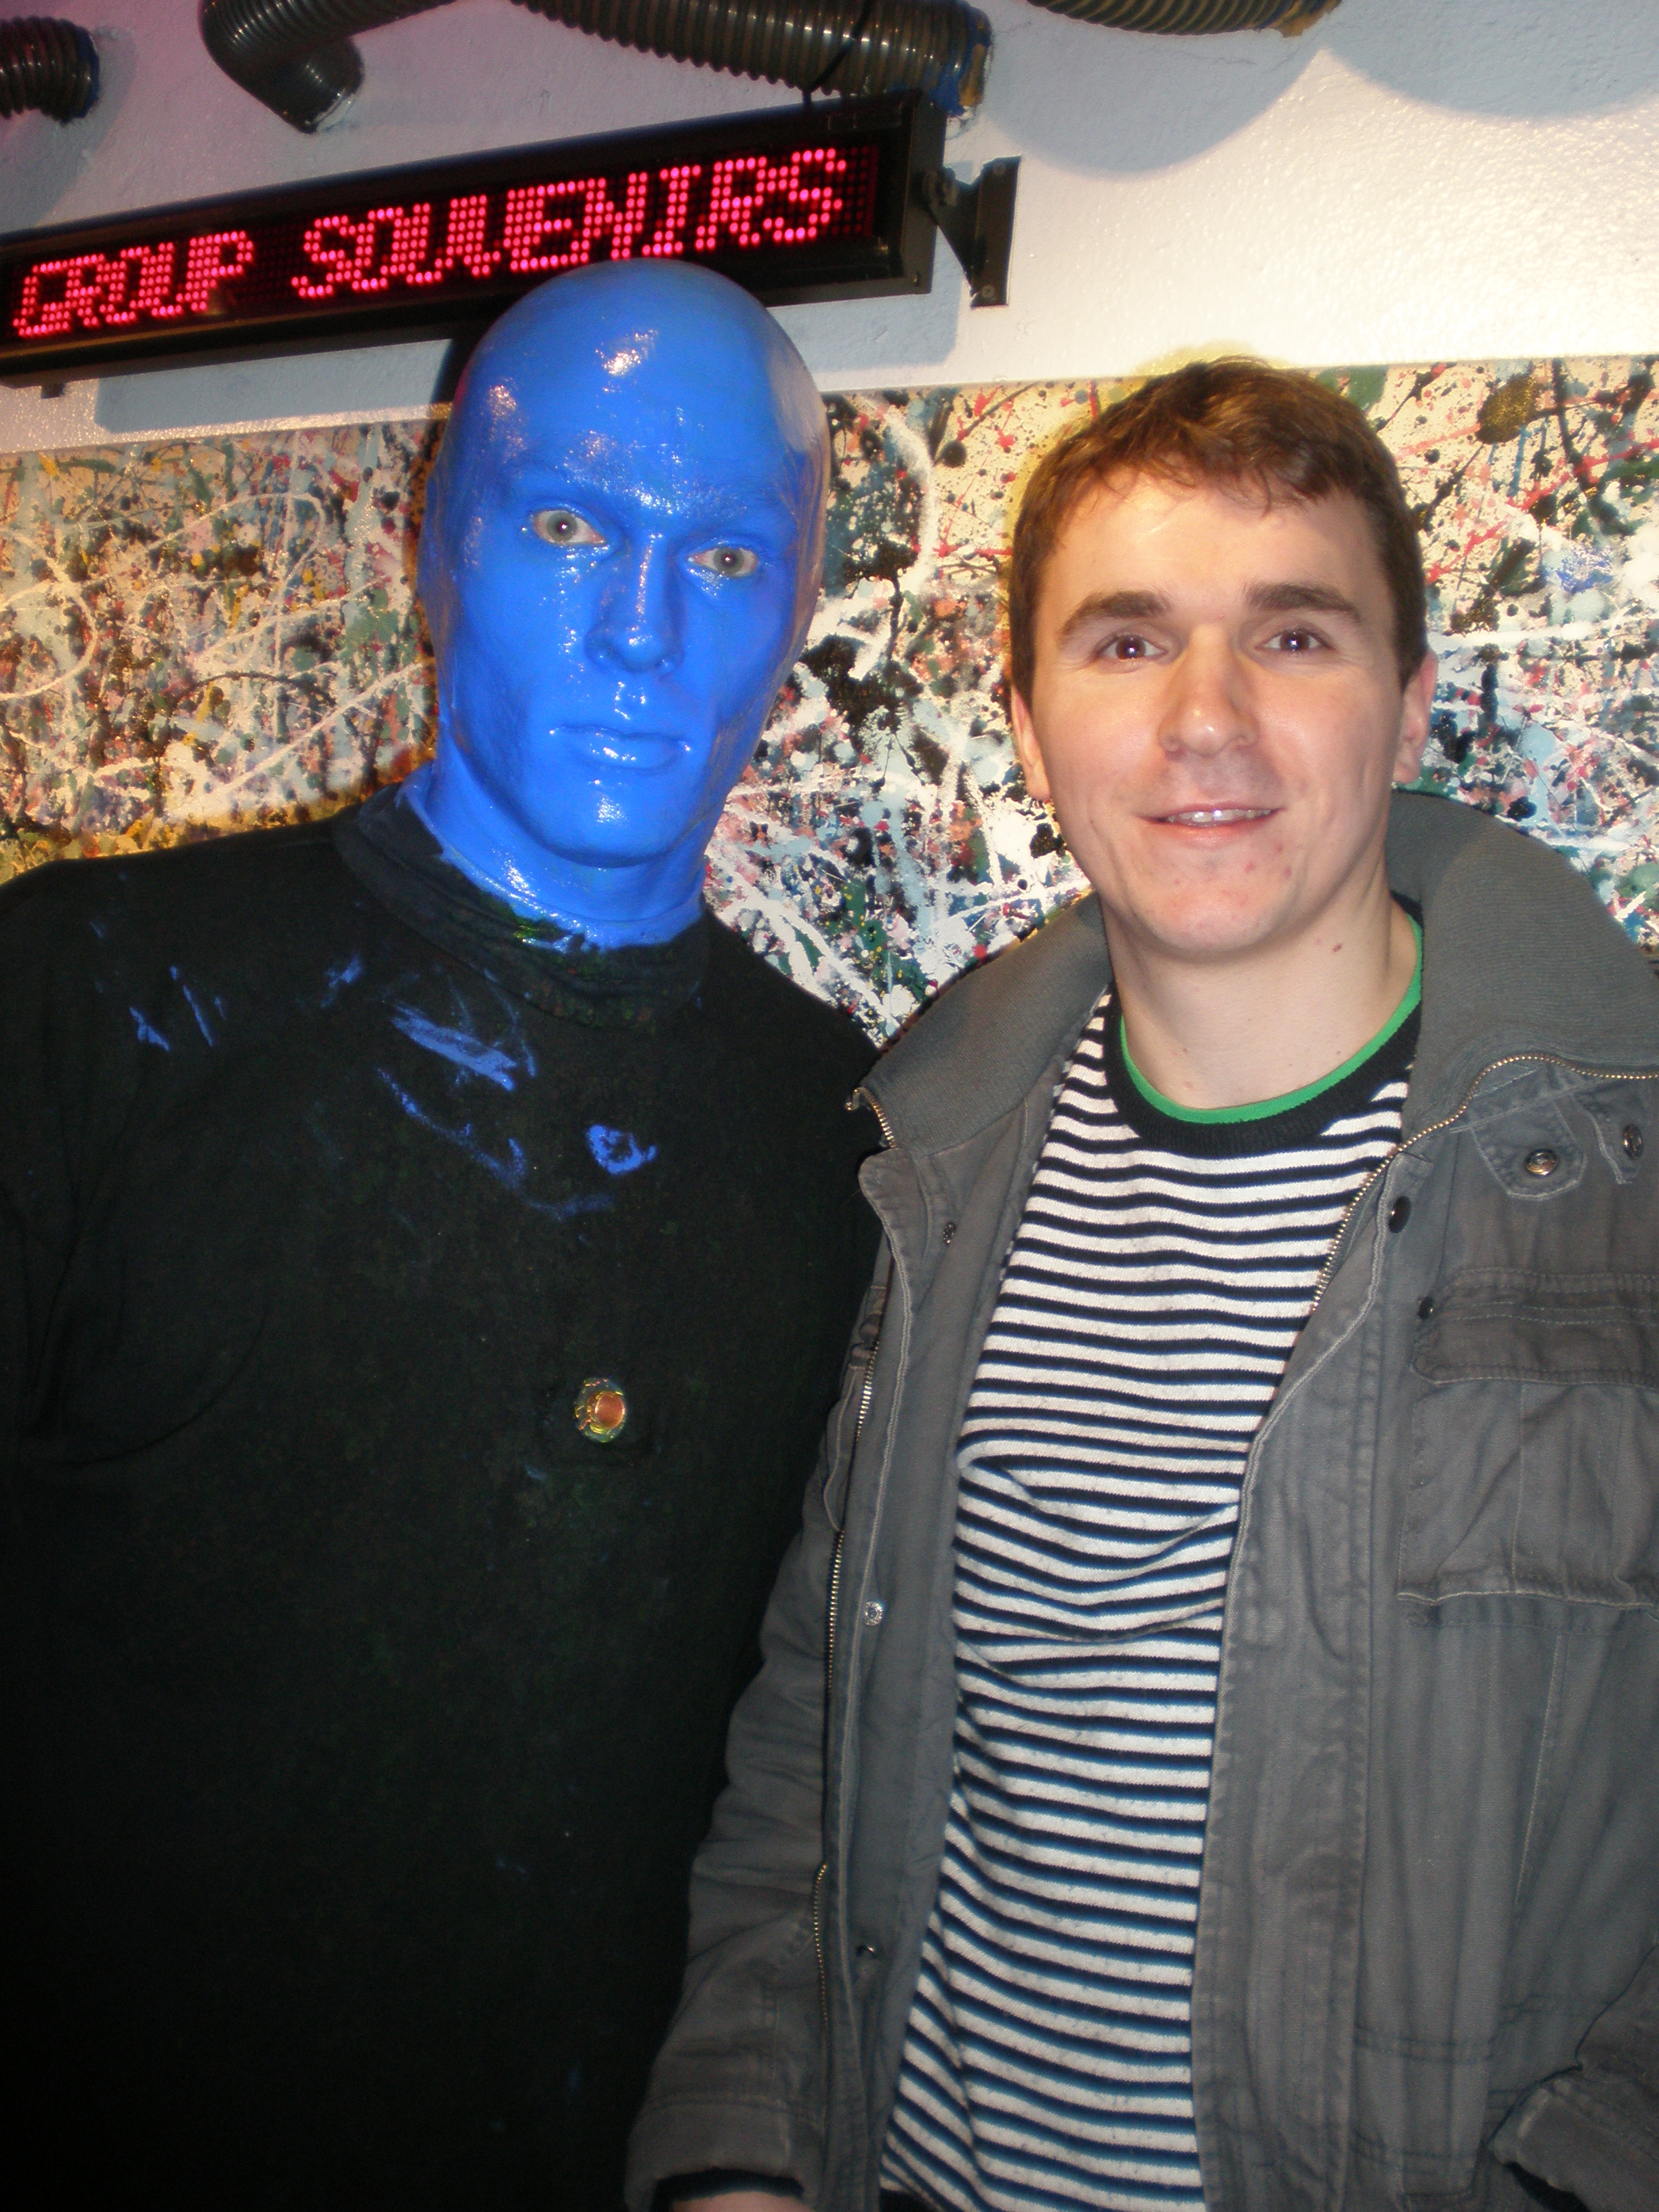 scott-with-a-legendary-blue-man-in-boston-usa_5047489728_o.jpg